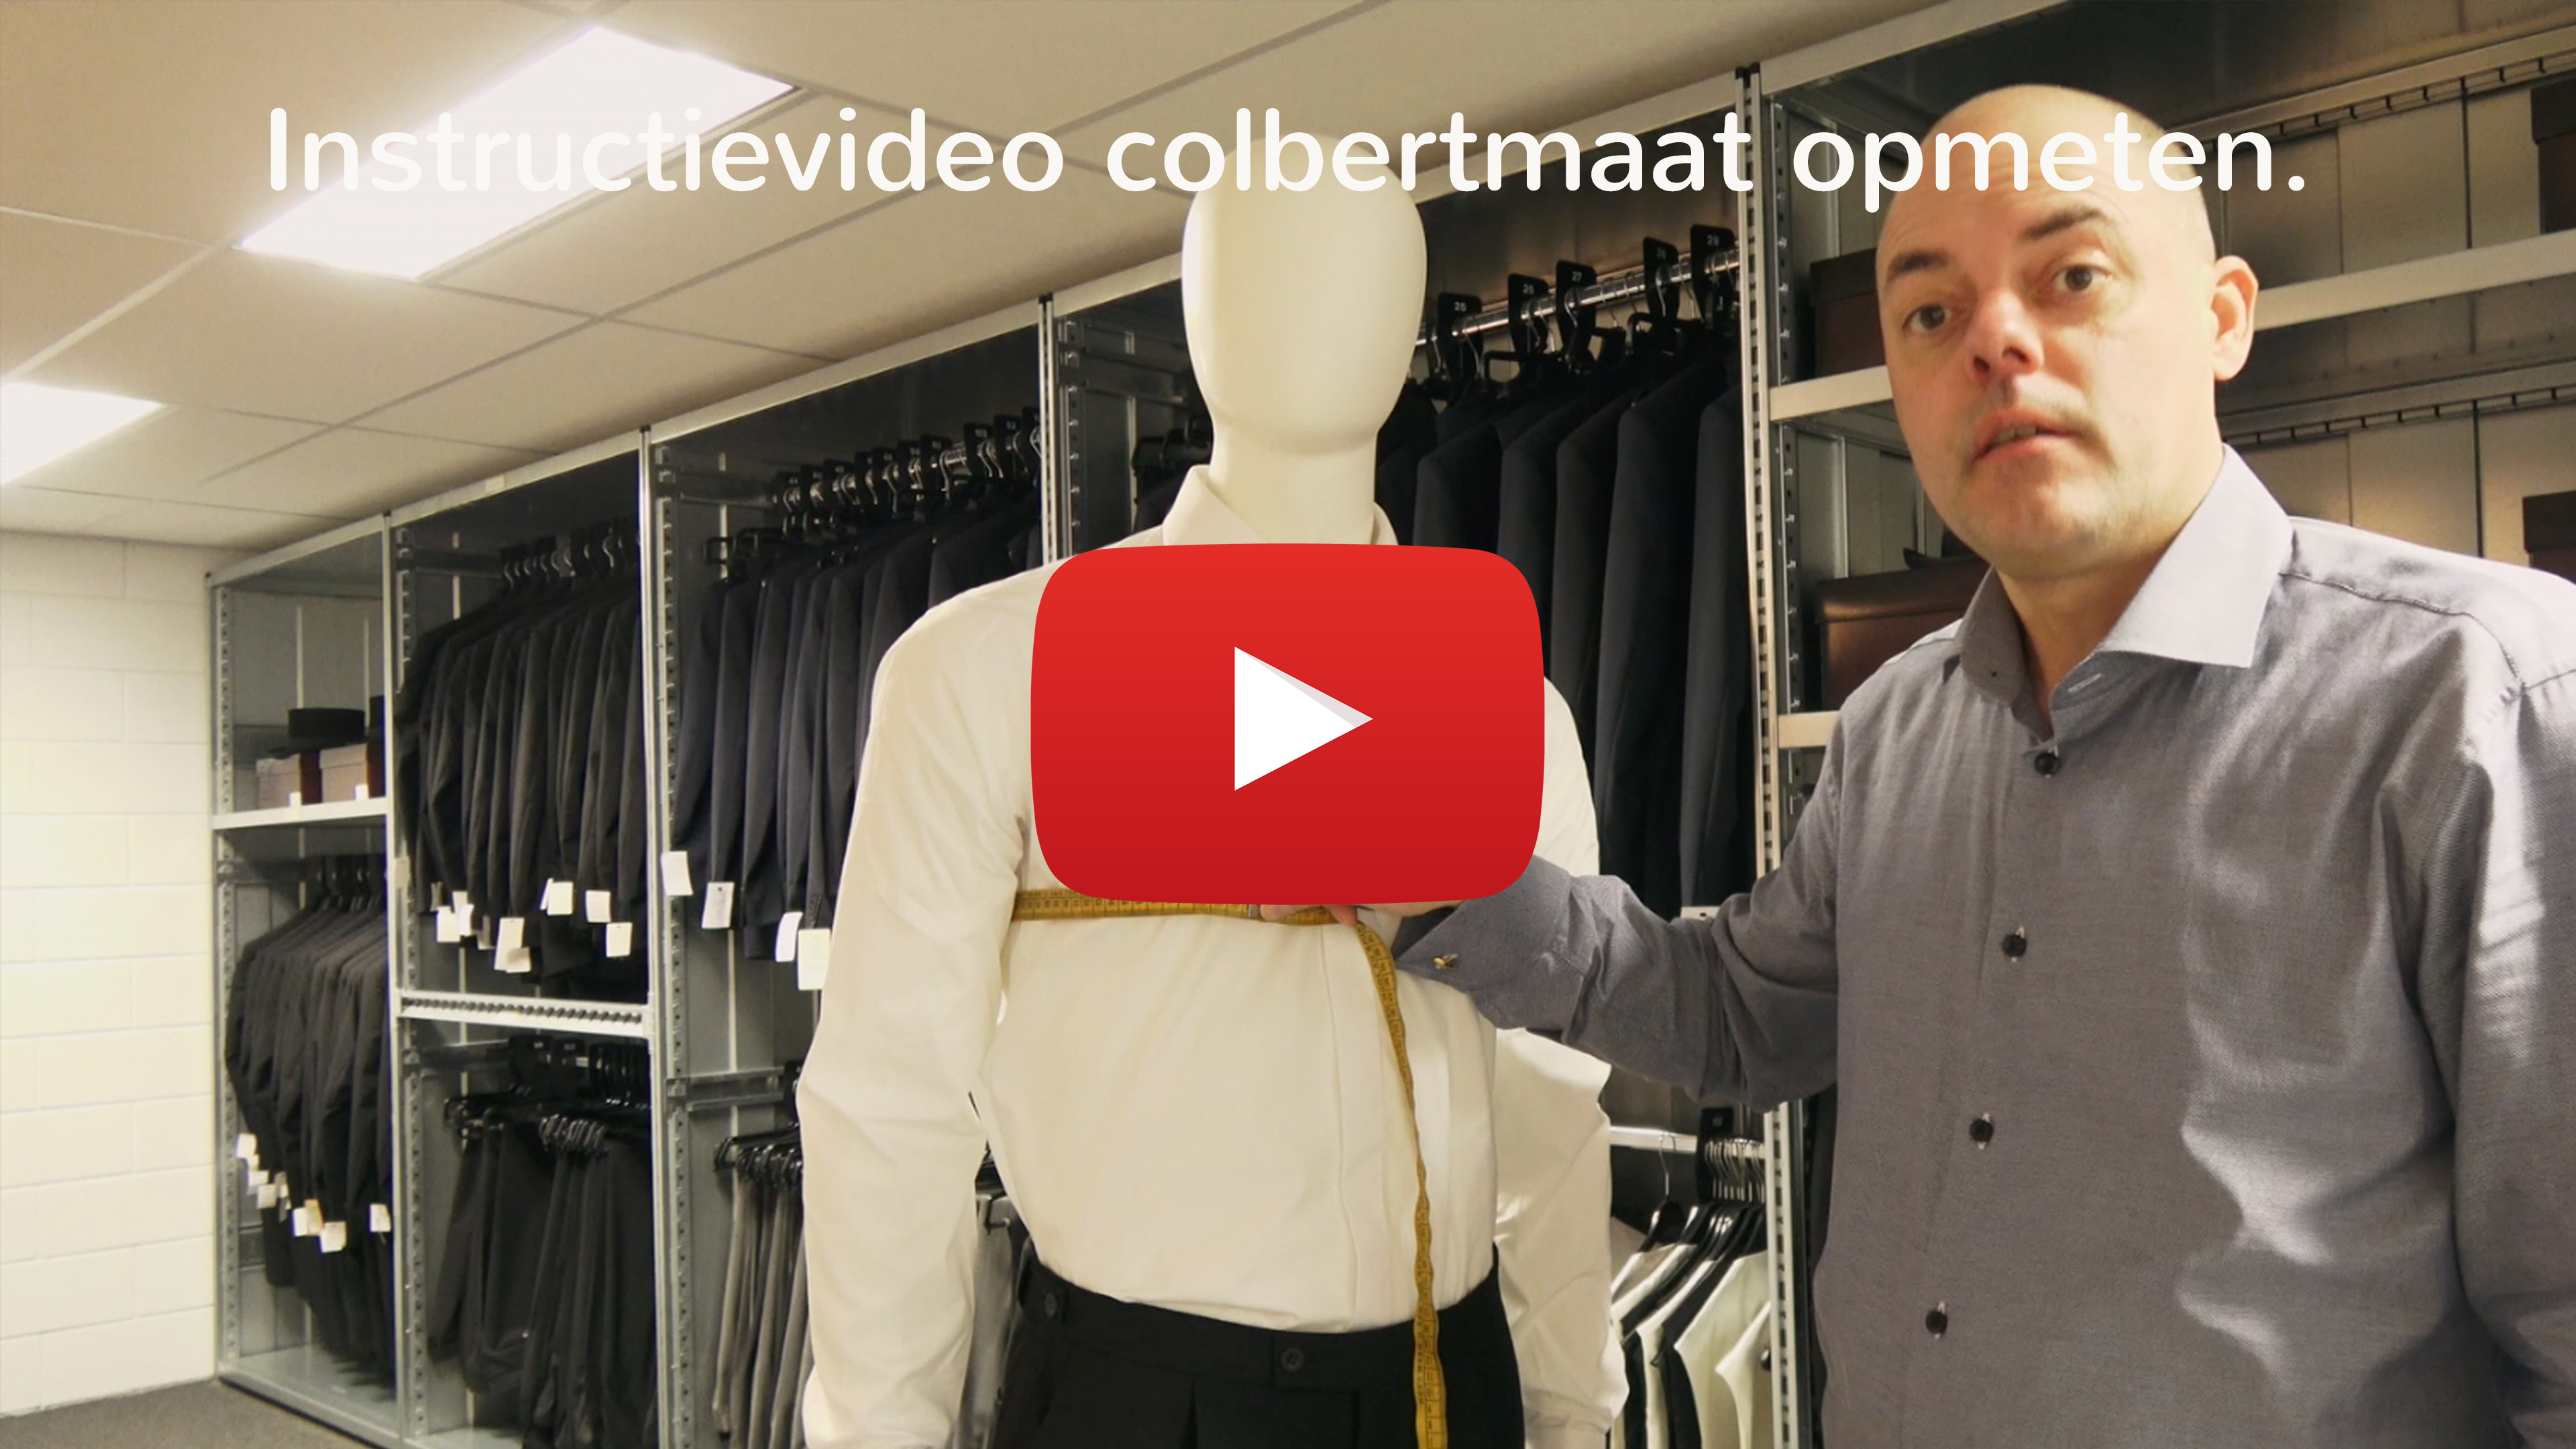 Instructievideo colbertmaat opmeten